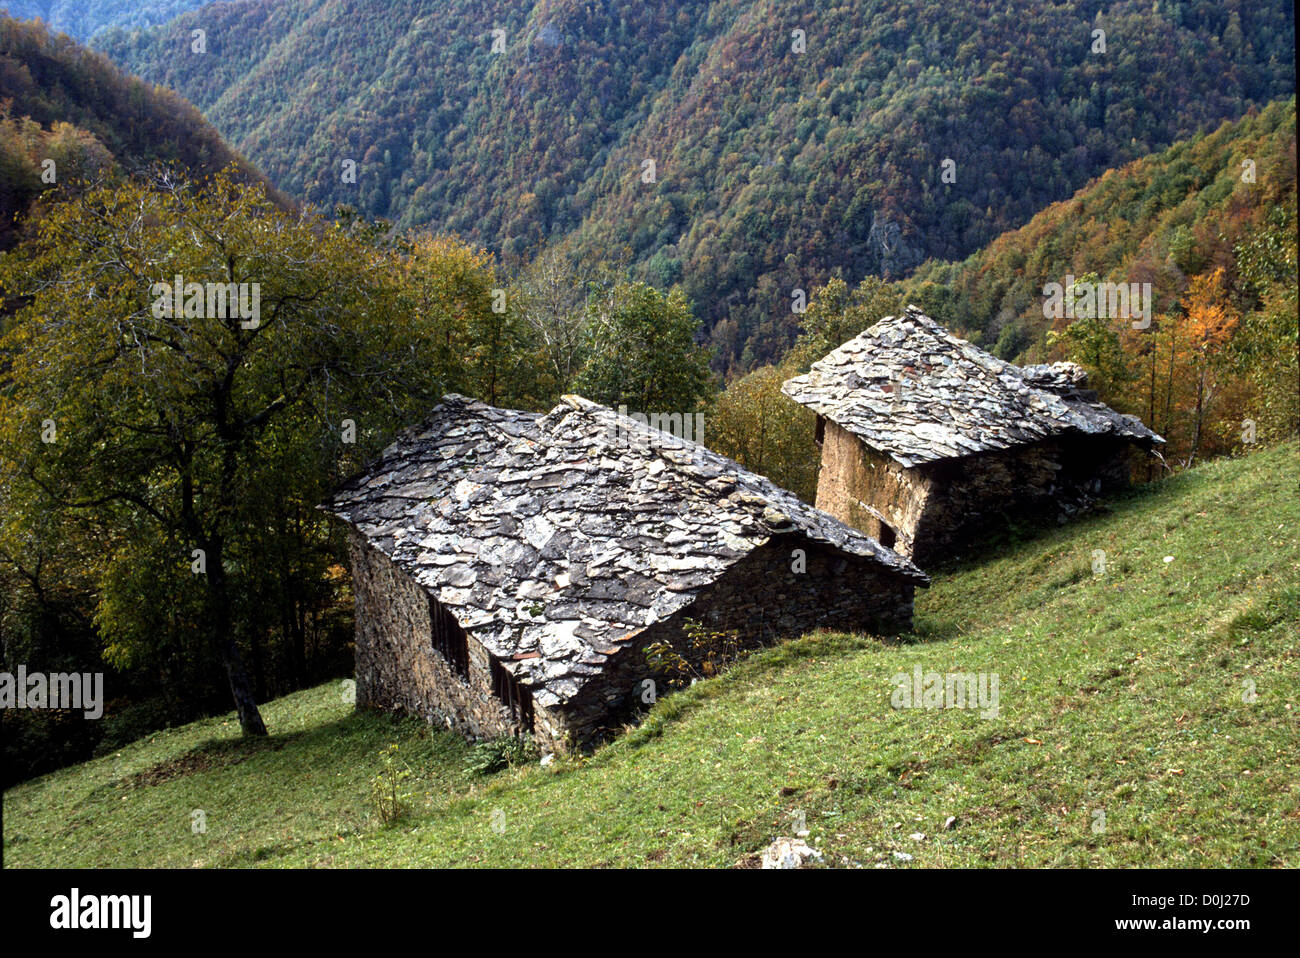 CHARACTERISTIC STONE-BUILT MOUNTAIN HOMESTEAD -PIEDMONT -ITALY - Stock Image